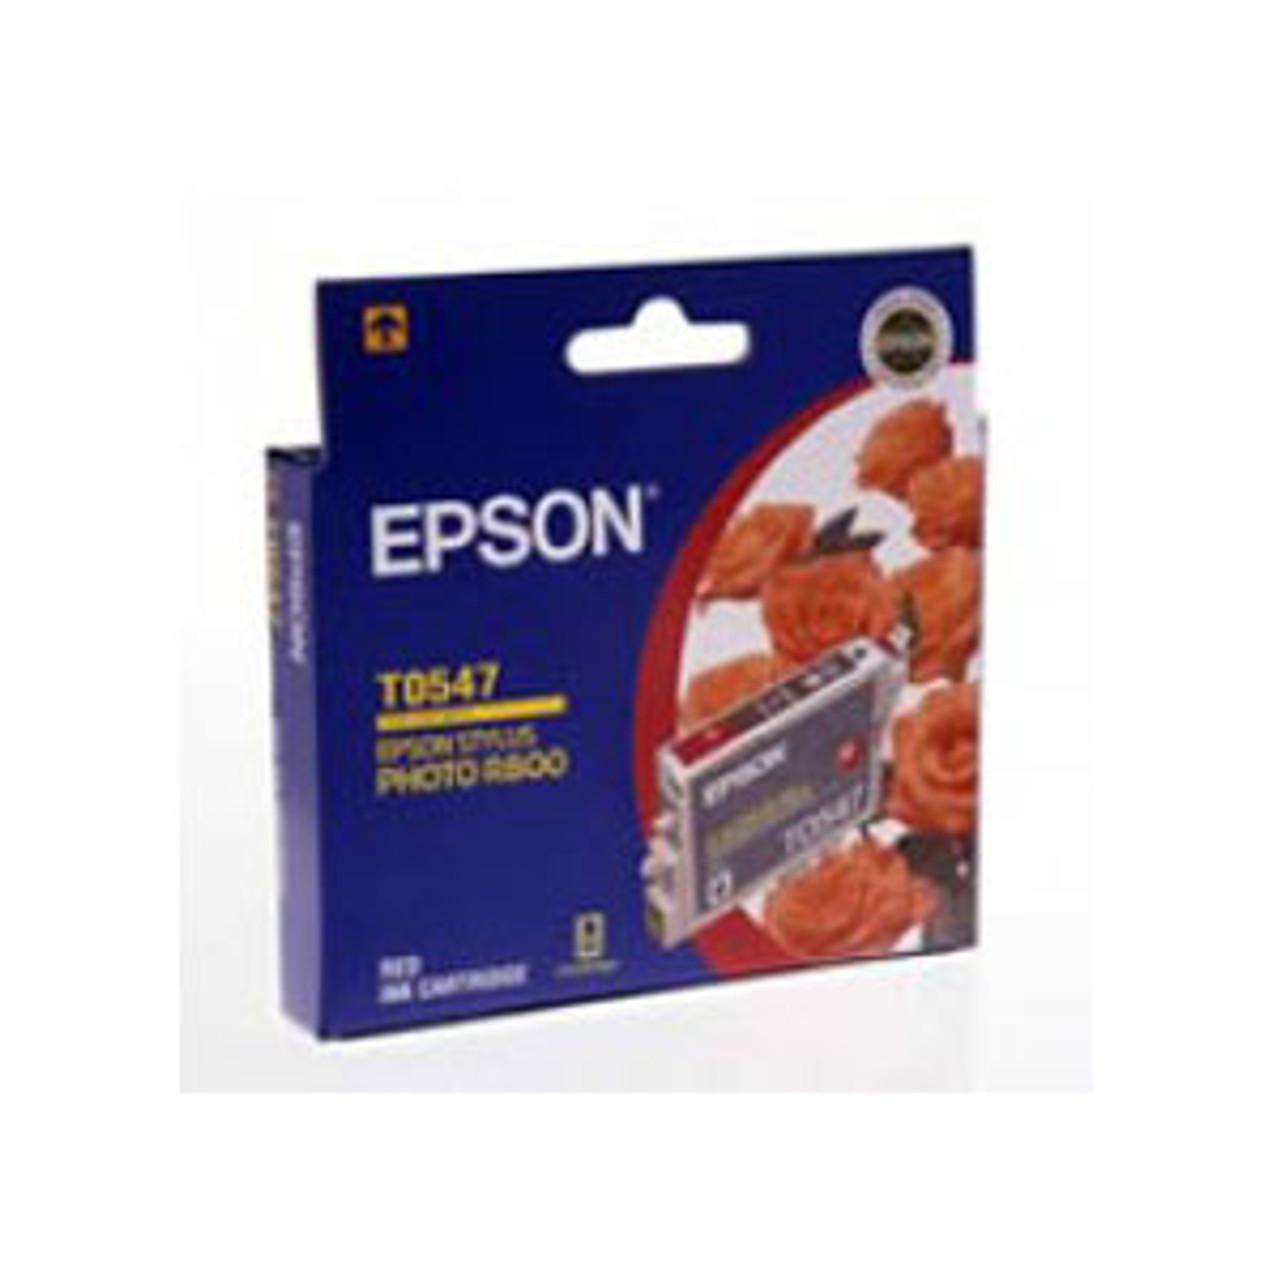 Image for Epson T0547 Red Ink 440 pages Red CX Computer Superstore